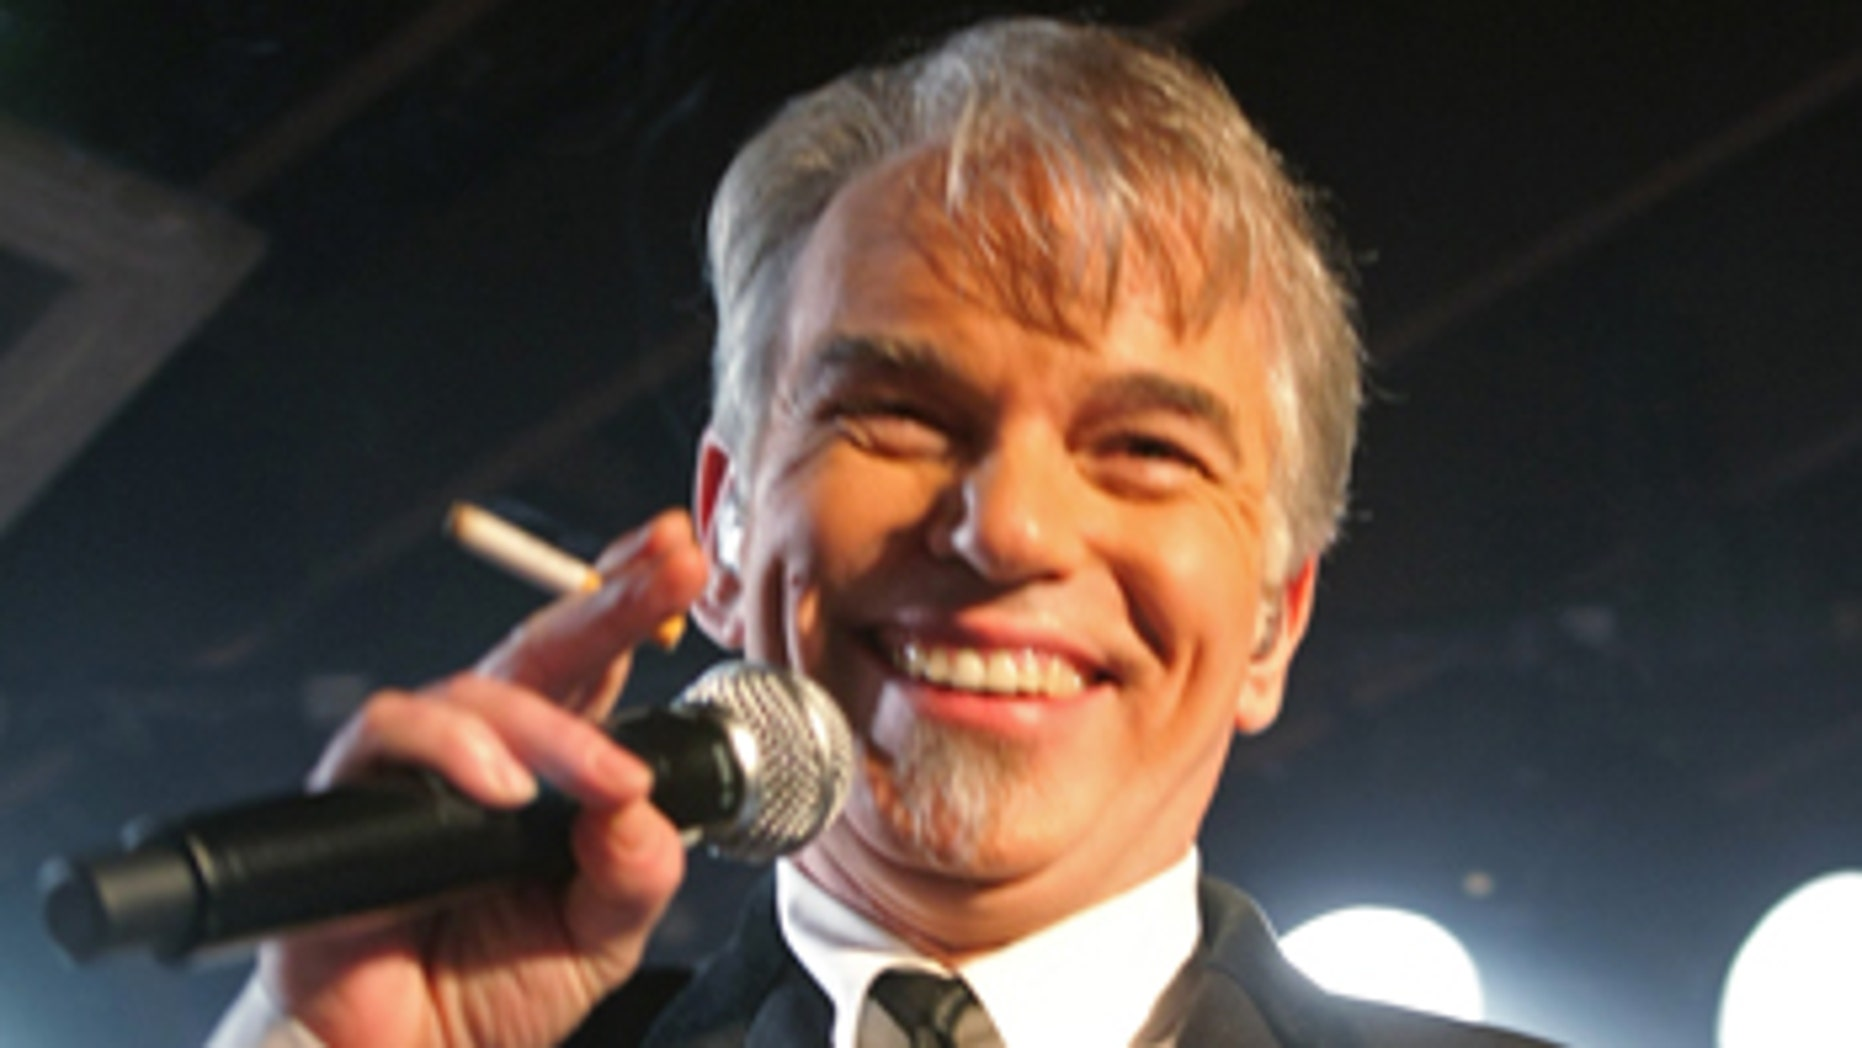 In this photo taken Wednesday, March 18, 2009, Billy Bob Thornton and the Boxmasters perform at the SXSW Music Festival Festival in Austin, Texas. In a radio appearance reminiscent of David's Letterman's interview with actor-turned-rapper Joaquin Phoenix, Billy Bob Thornton gave a puzzling and intentionally difficult interview Wednesday, April 8, 2009. (AP Photo/Jack Plunkett)